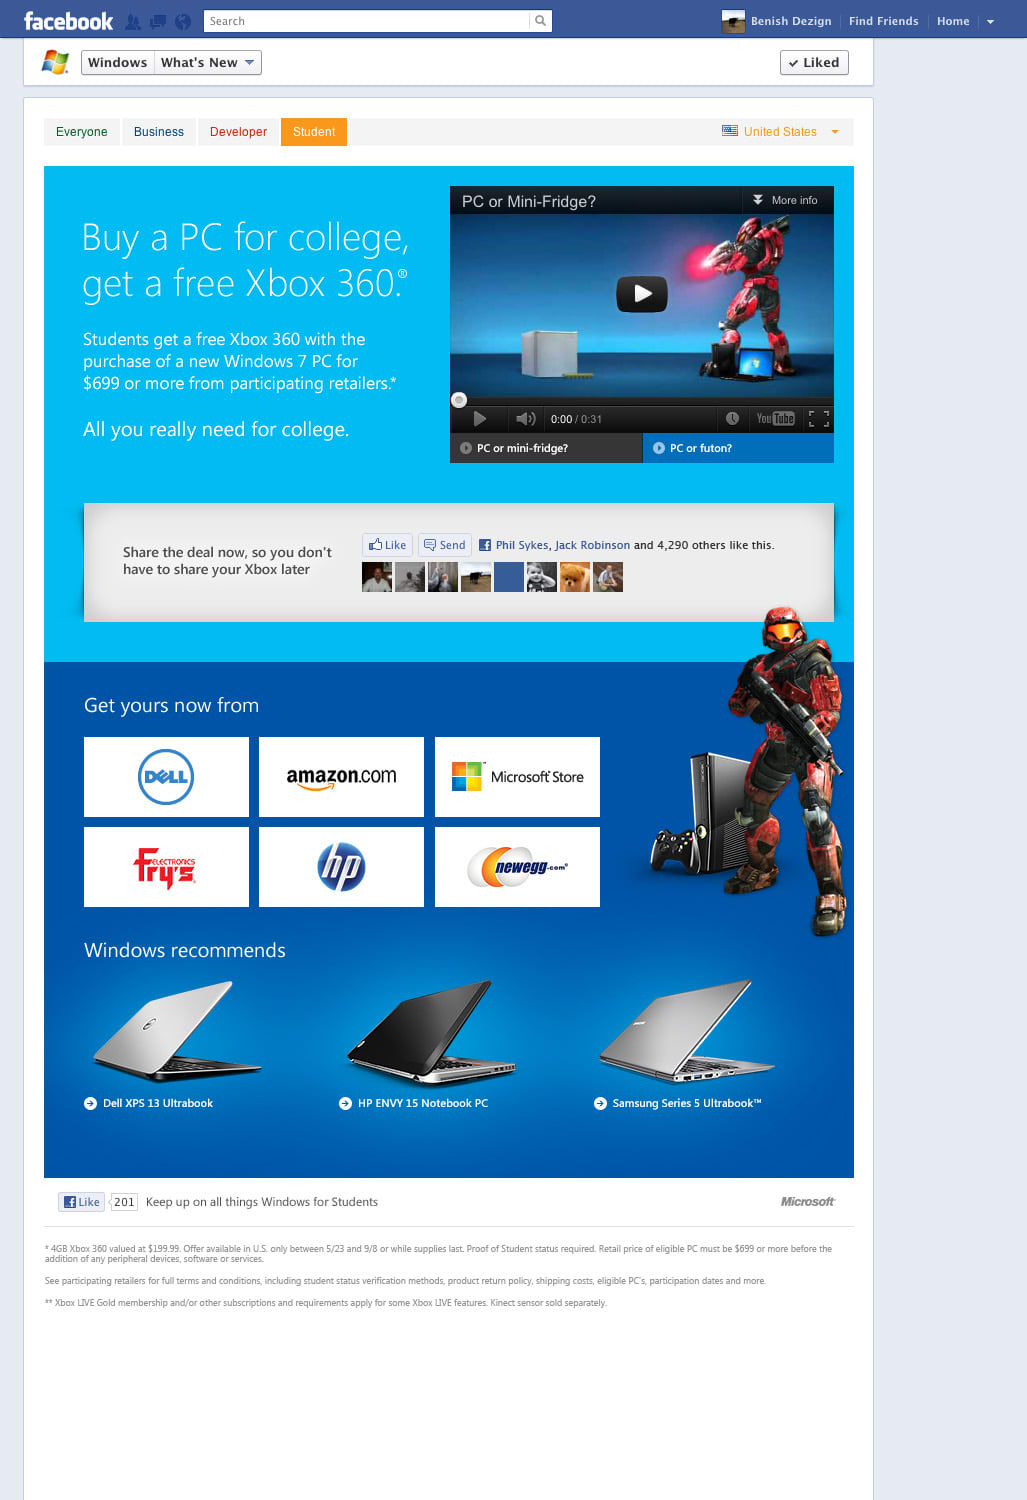 Microsoft Windows Back to School Campaign Landing Page